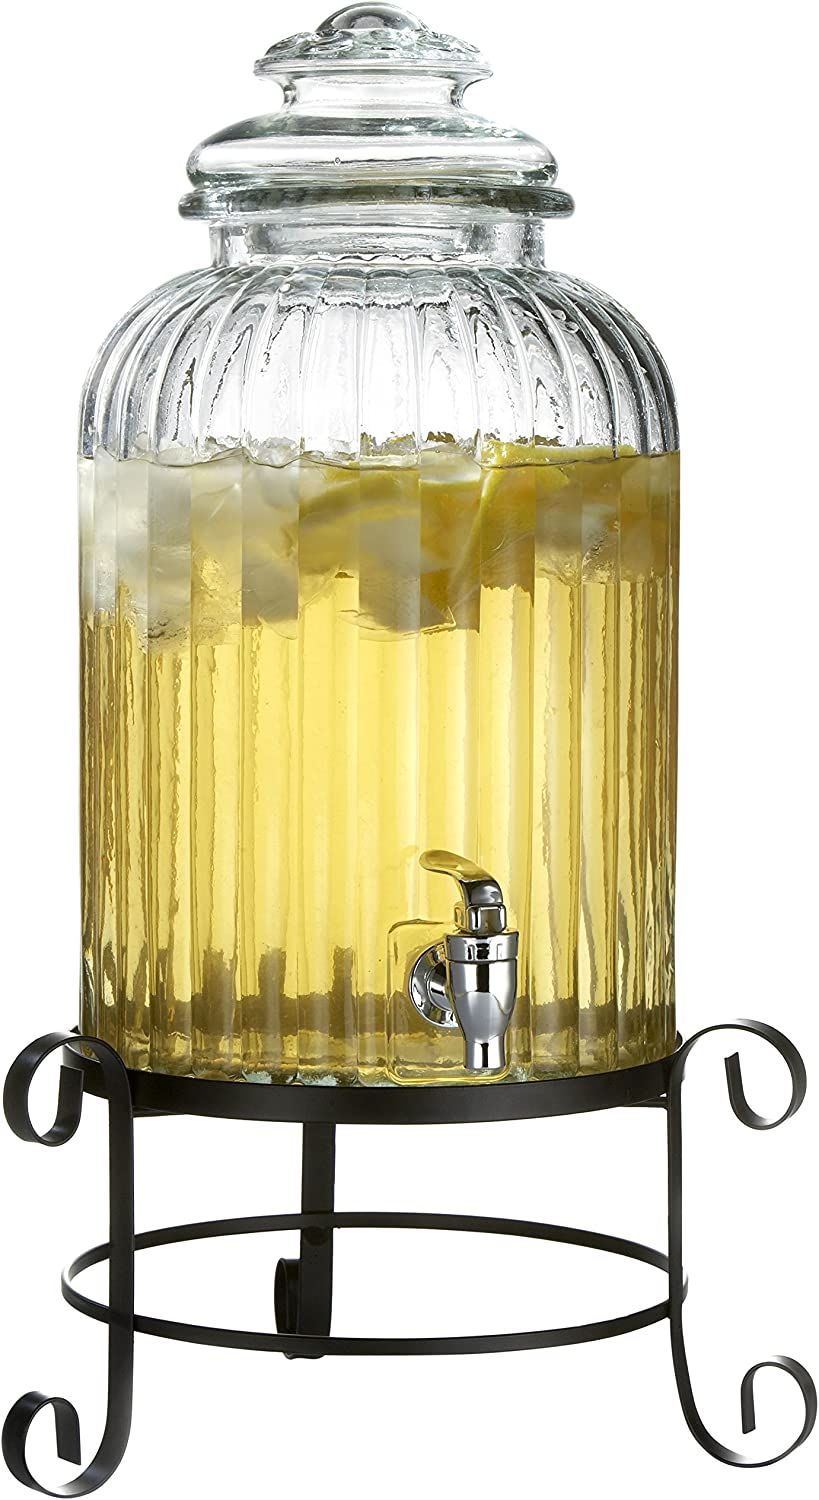 Style Setter 210919-GB Beverage Cold Drink Dispenser w/ 3-Gallon Capacity Glass Jug, Leak-Proof Acrylic Spigot in Gorgeous Gift Box for Parties, 21